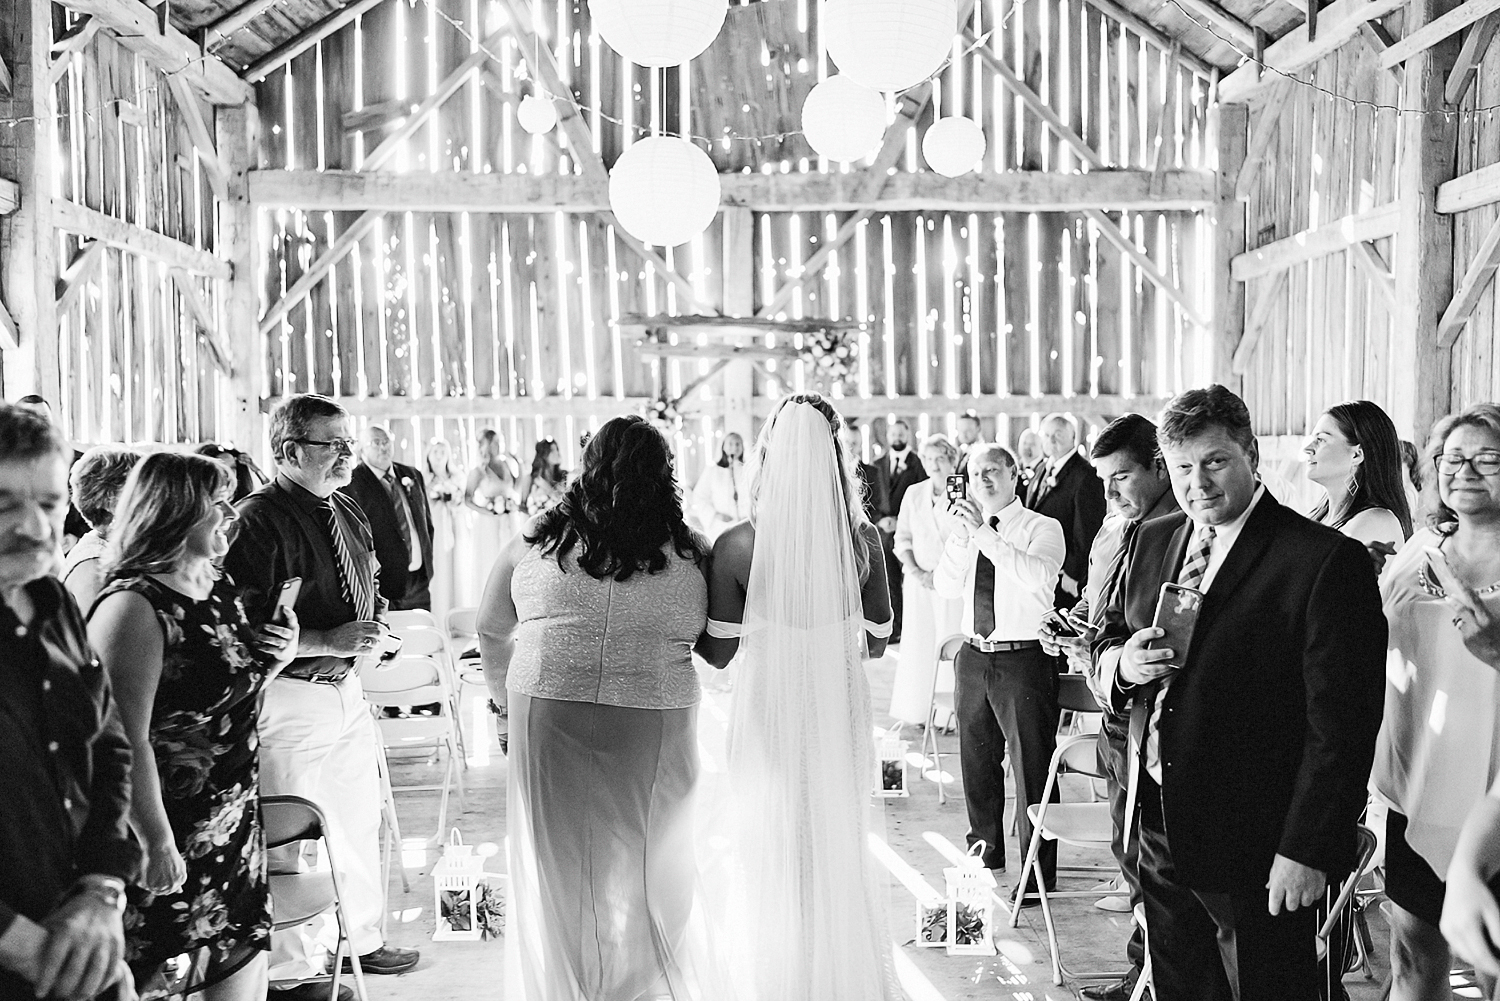 dowswell-barn-wedding-beaverton-best-wedding-photographers-toronto-moody-style-candid-photojounalistic-approach-intimate-vintage-farm-wedding-Farm-wedding-venue-details-ceremony.jpg